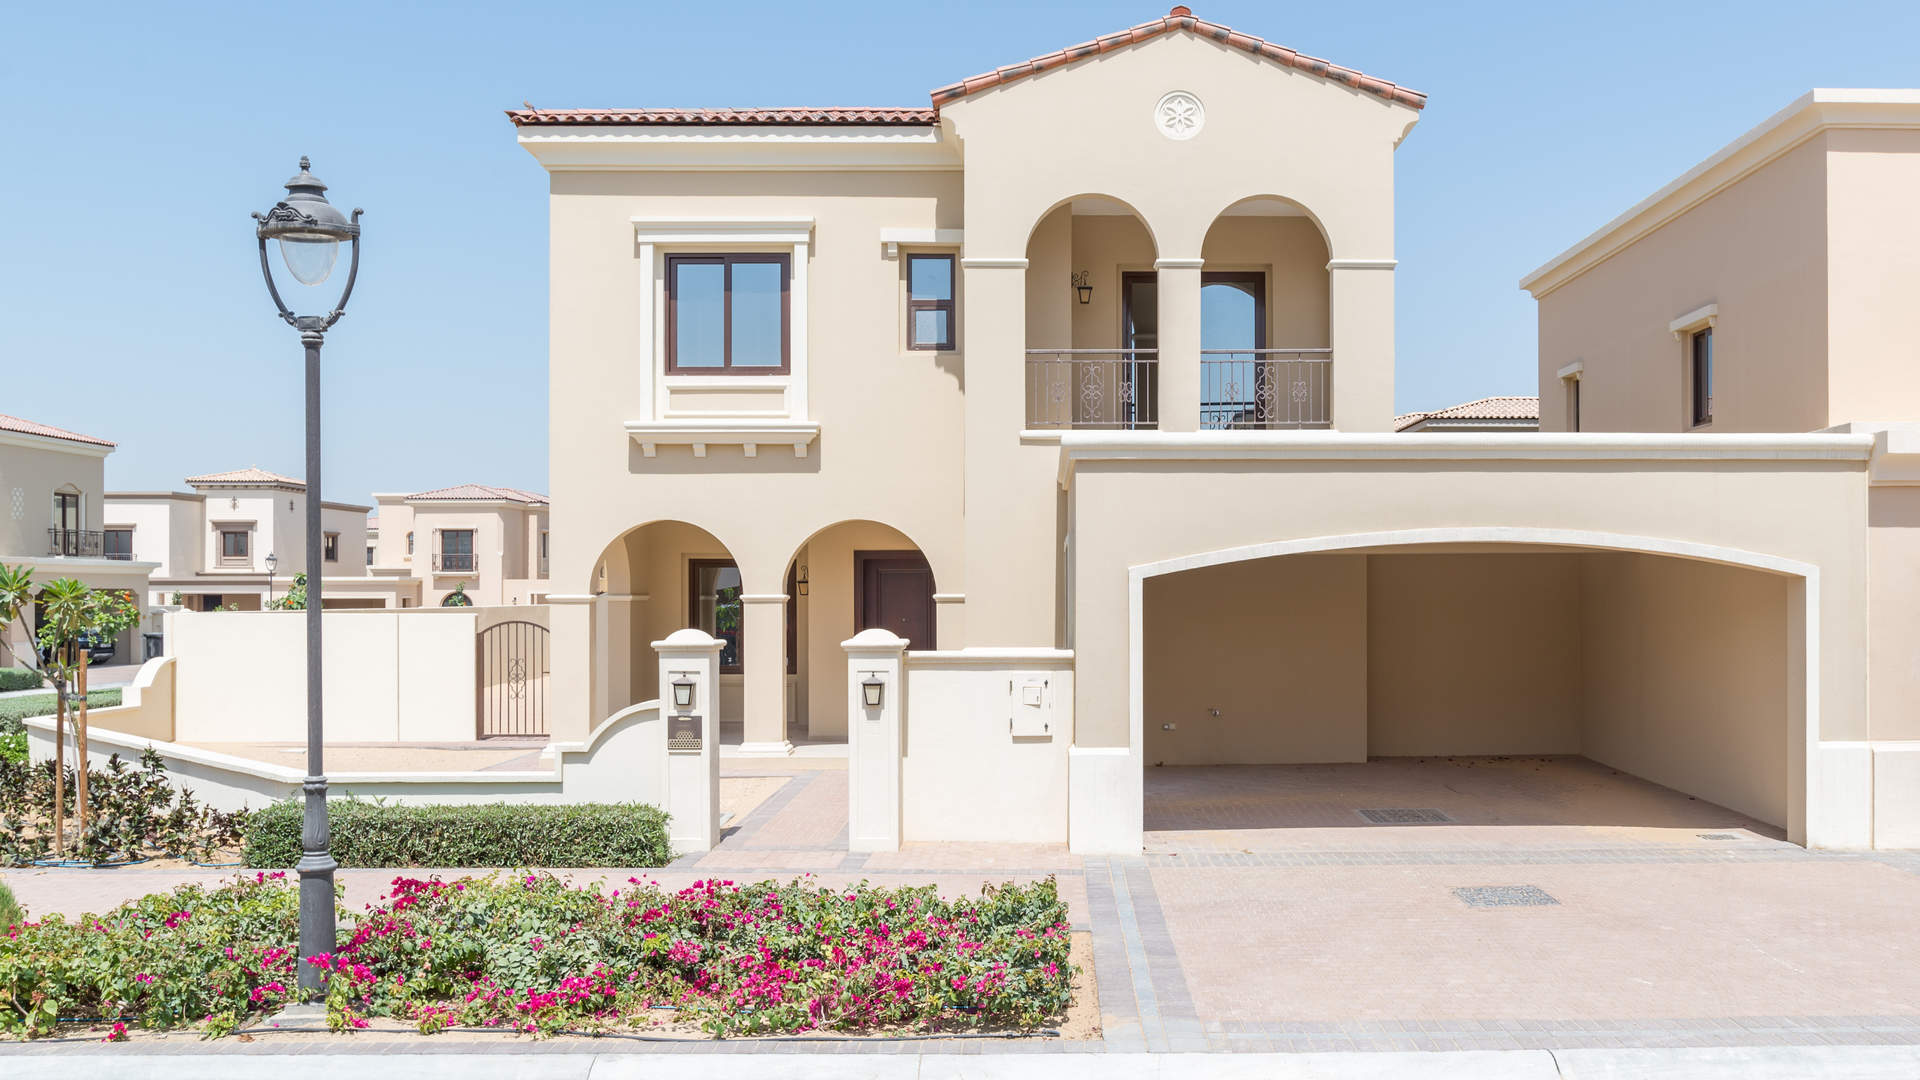 Enjoy A Luxury Lifestyle In Dubai's Upscale Community Arabian Ranches